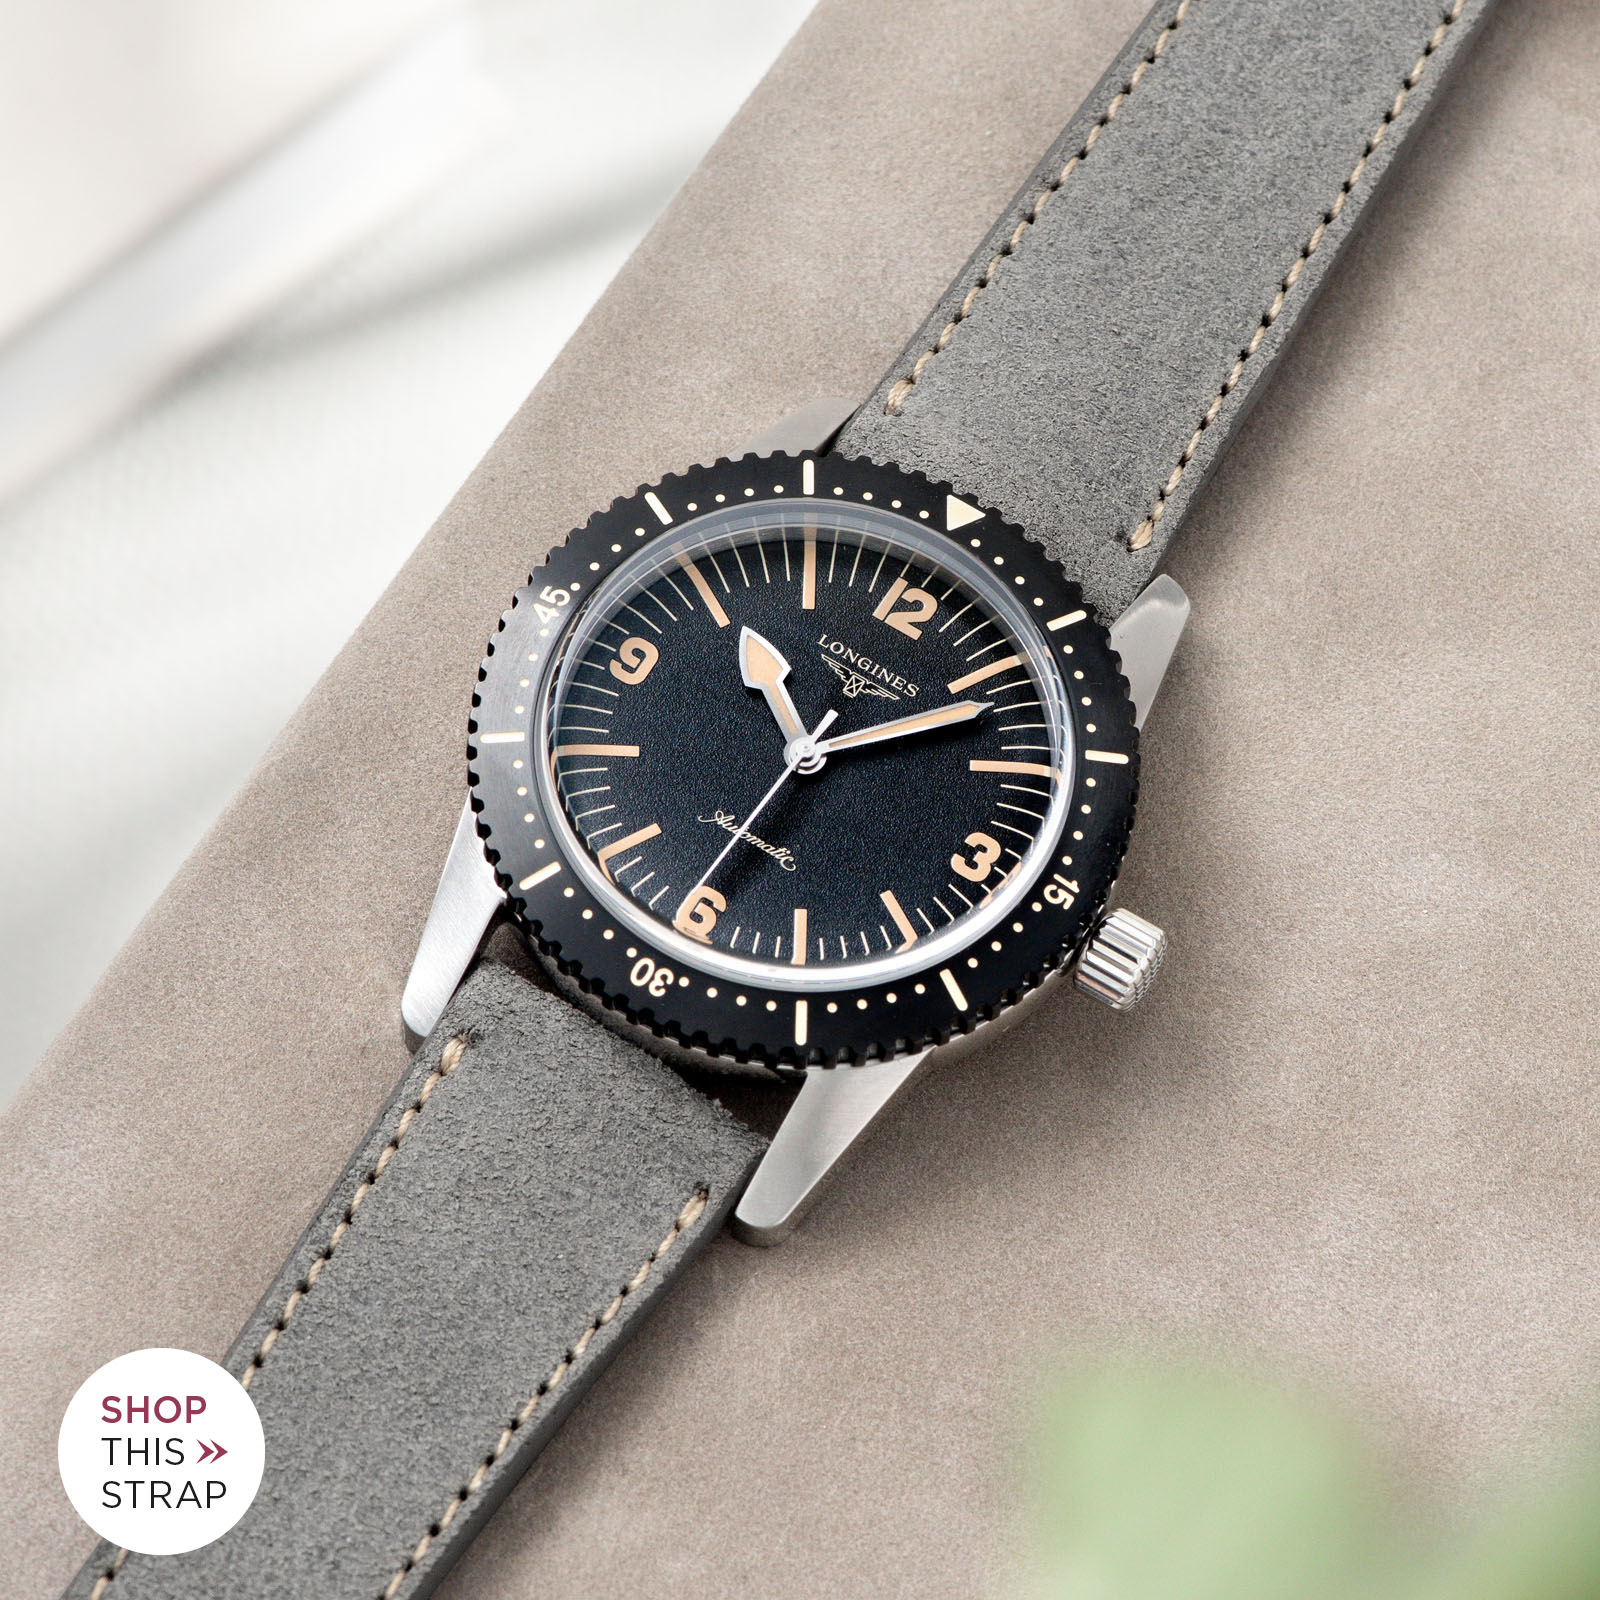 Bulang and Sons_Strap Guide_Longines Skin Diver_Refined Rugged Grey Silky Suede Leather Watch Strap